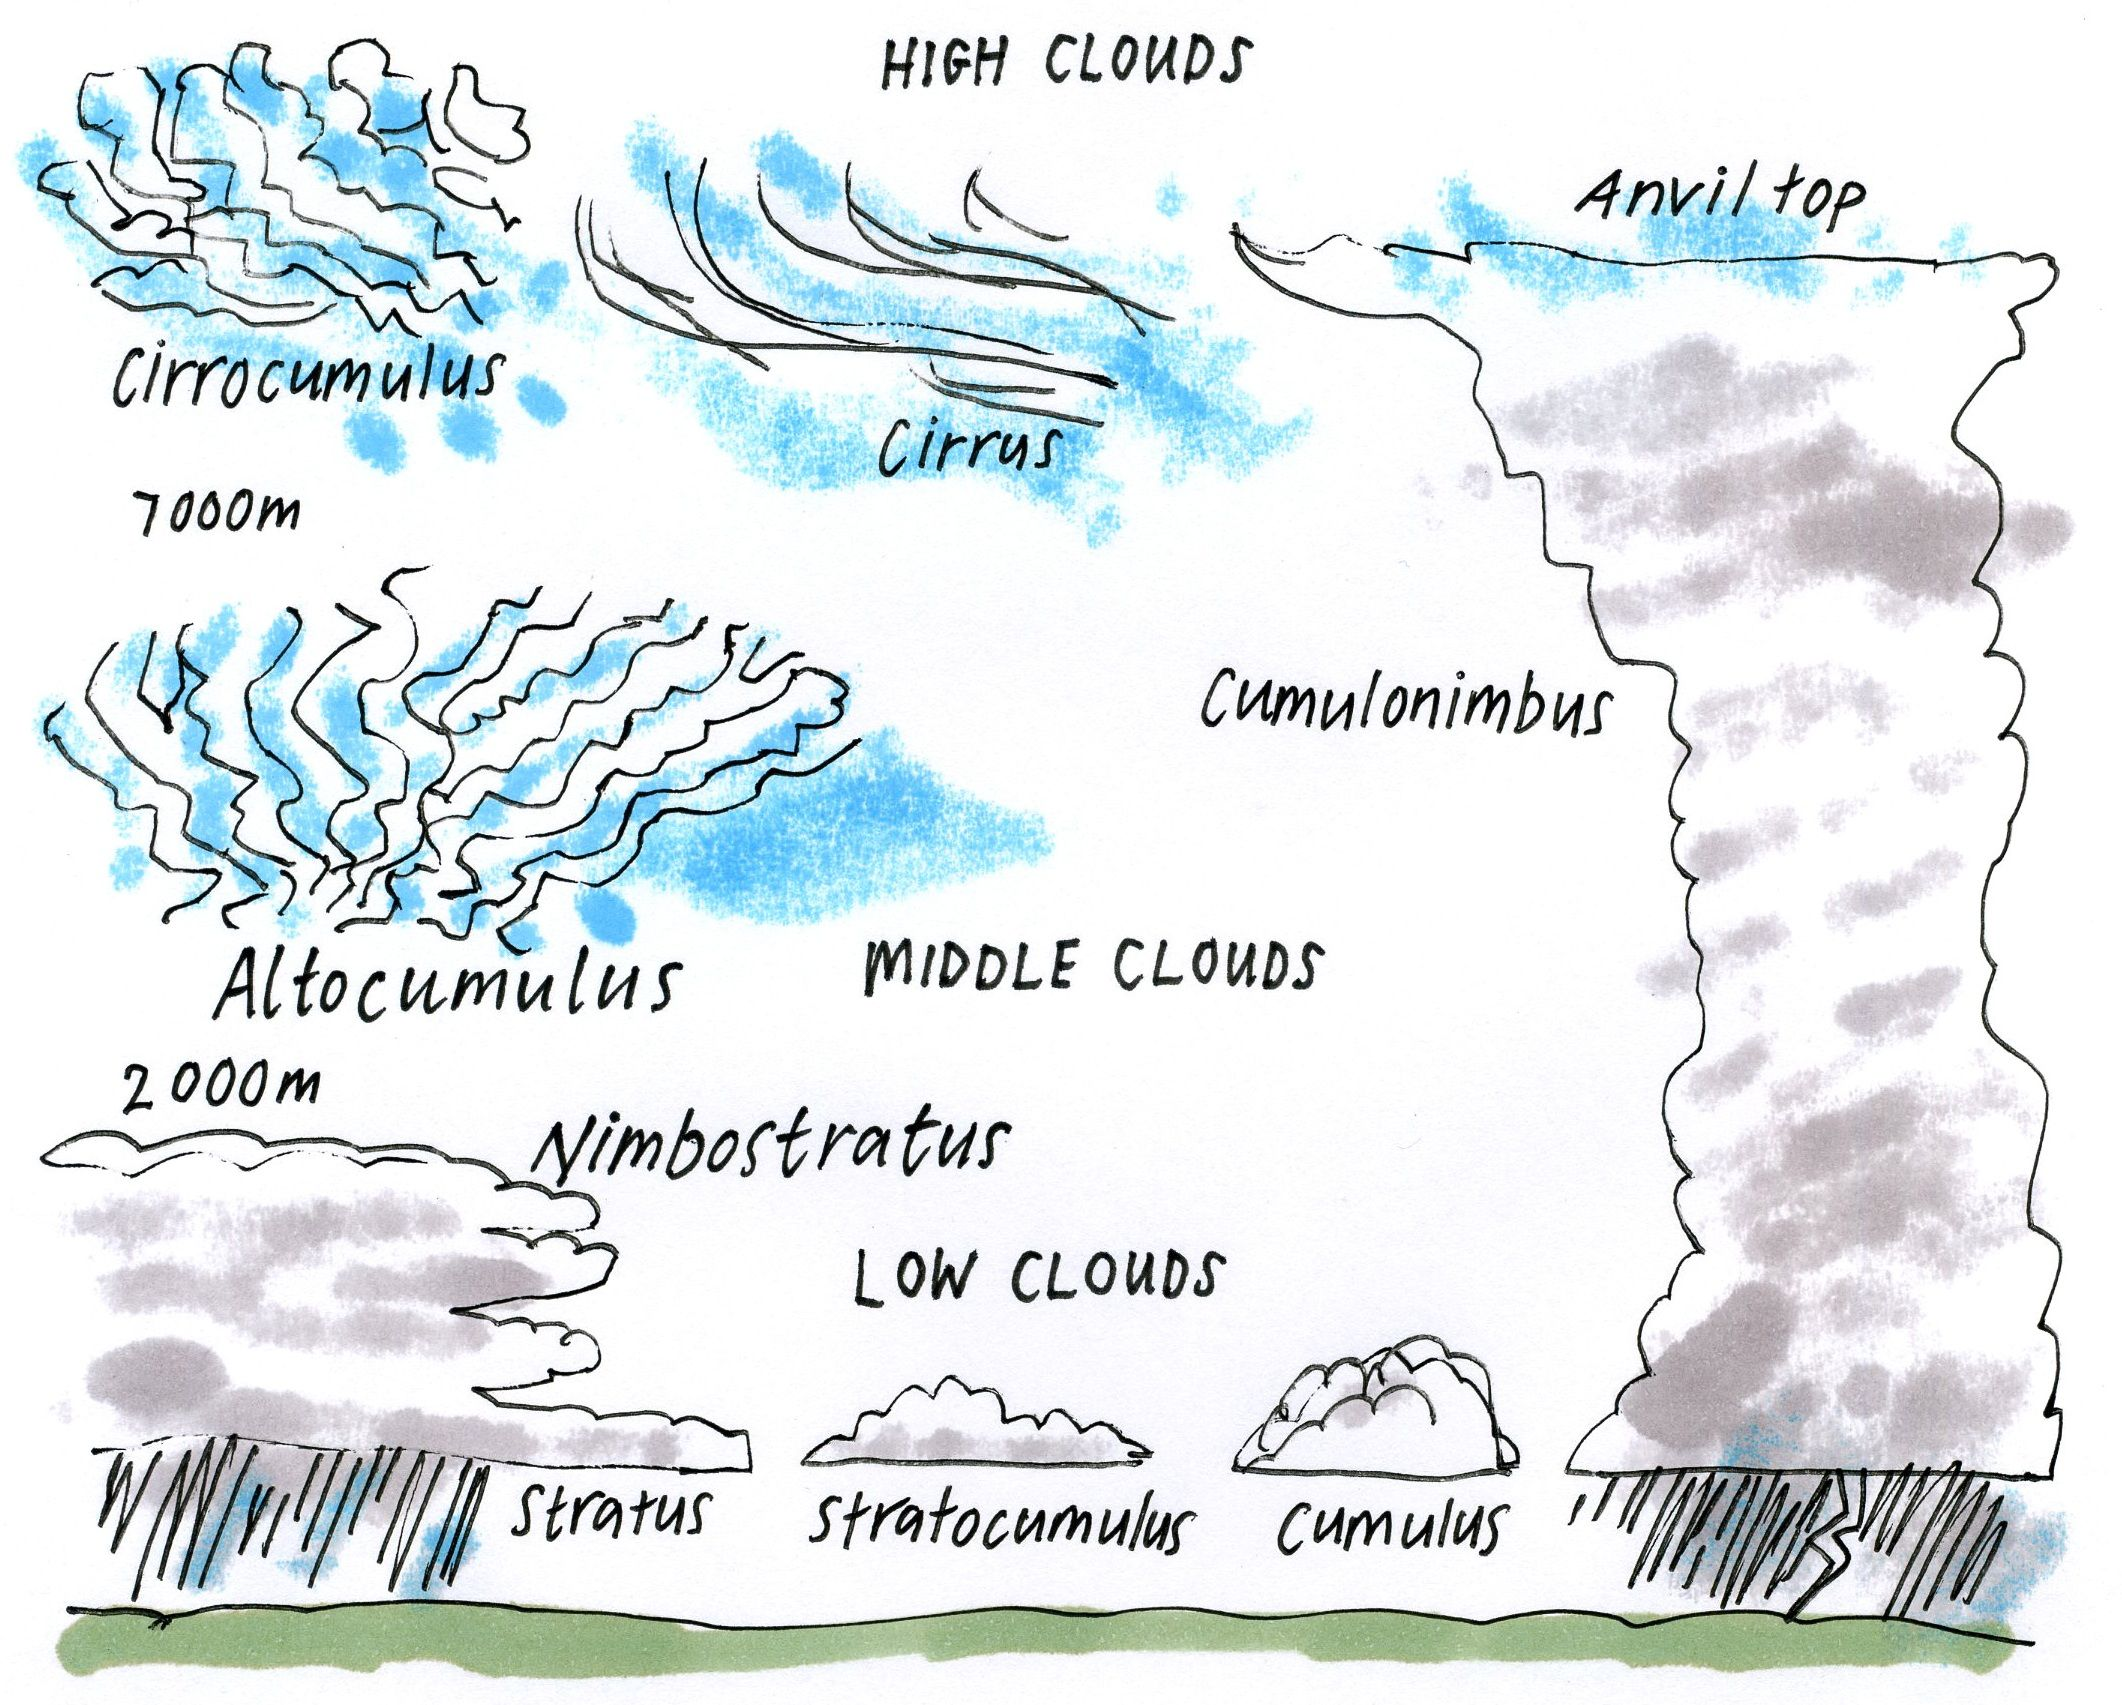 medium resolution of earth layers worksheet   ... middlelayers of earthearth atmospherethe sun  layers of identification   Clouds